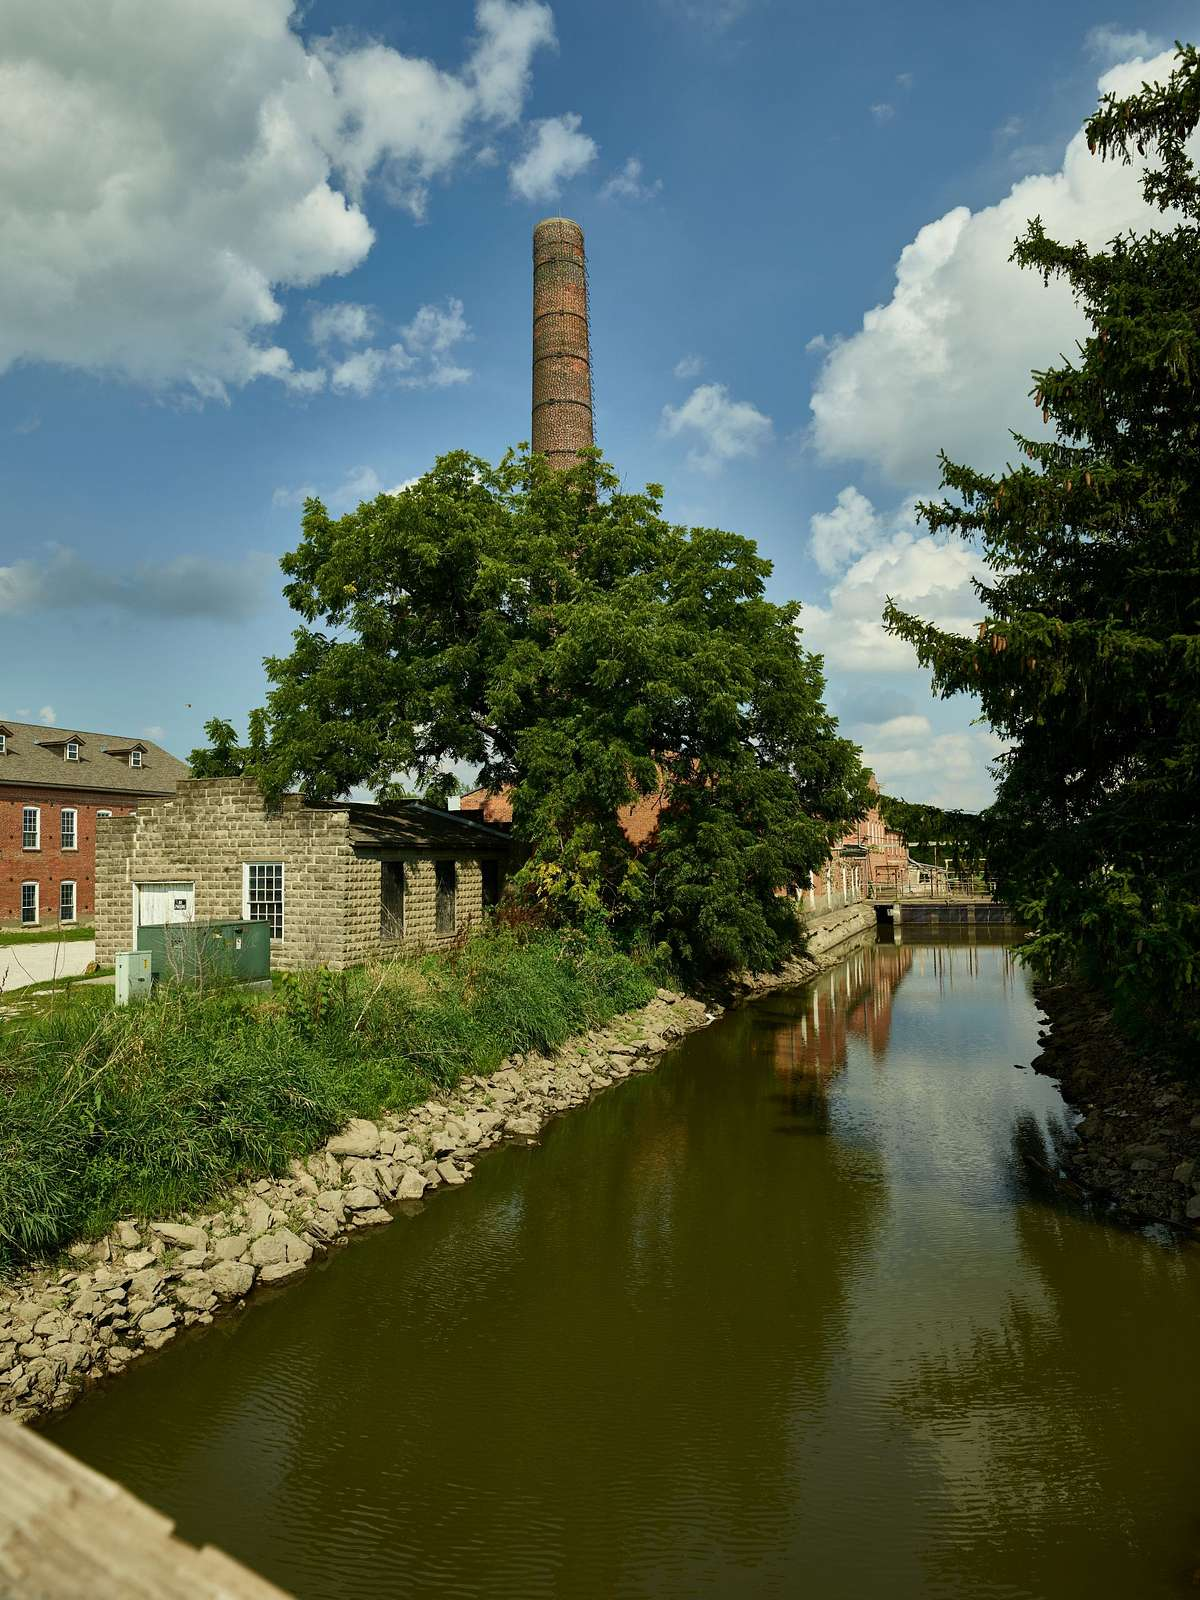 Canal in Amana, one of the Amana Colonies, seven villages in Iowa County, Iowa